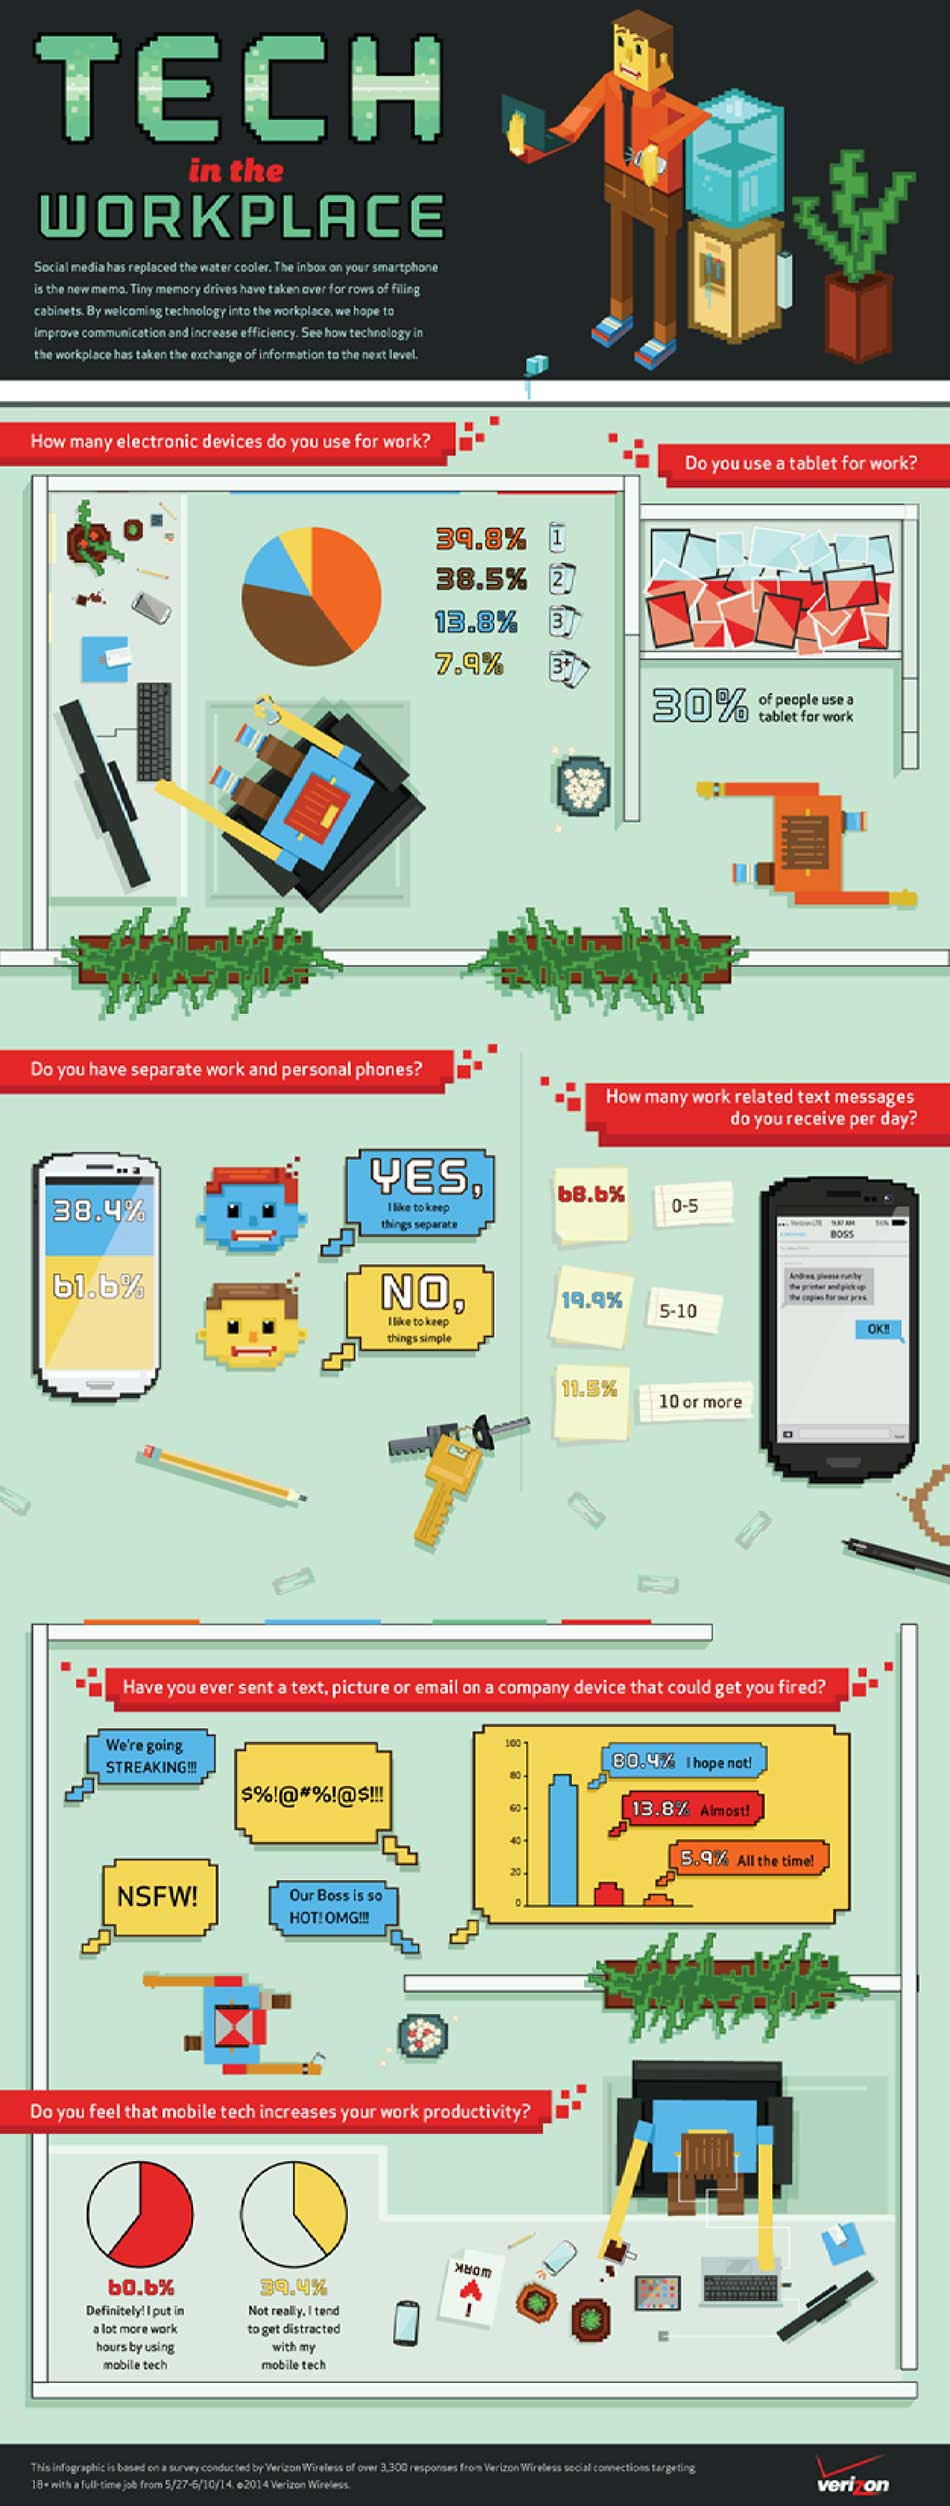 tech-in-the-workplace-infographic